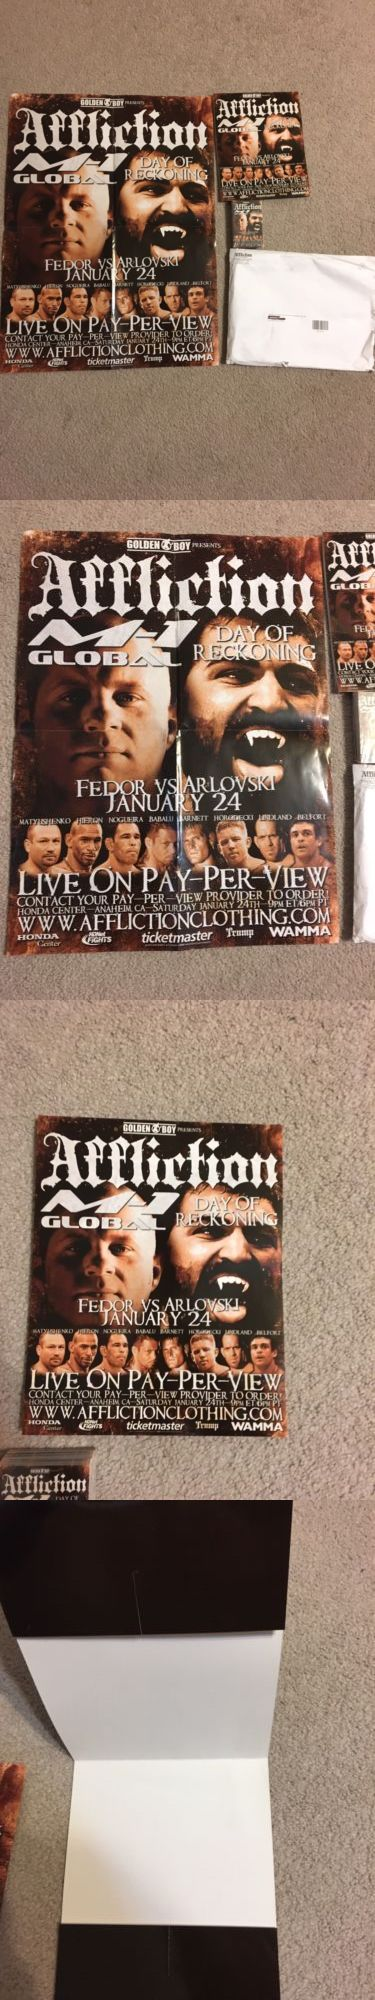 Mixed Martial Arts MMA Cards 170134: Fedor Emelianenko Andrei Arlovski Affliction Day Of Reckoning Promo Package -> BUY IT NOW ONLY: $399 on eBay!